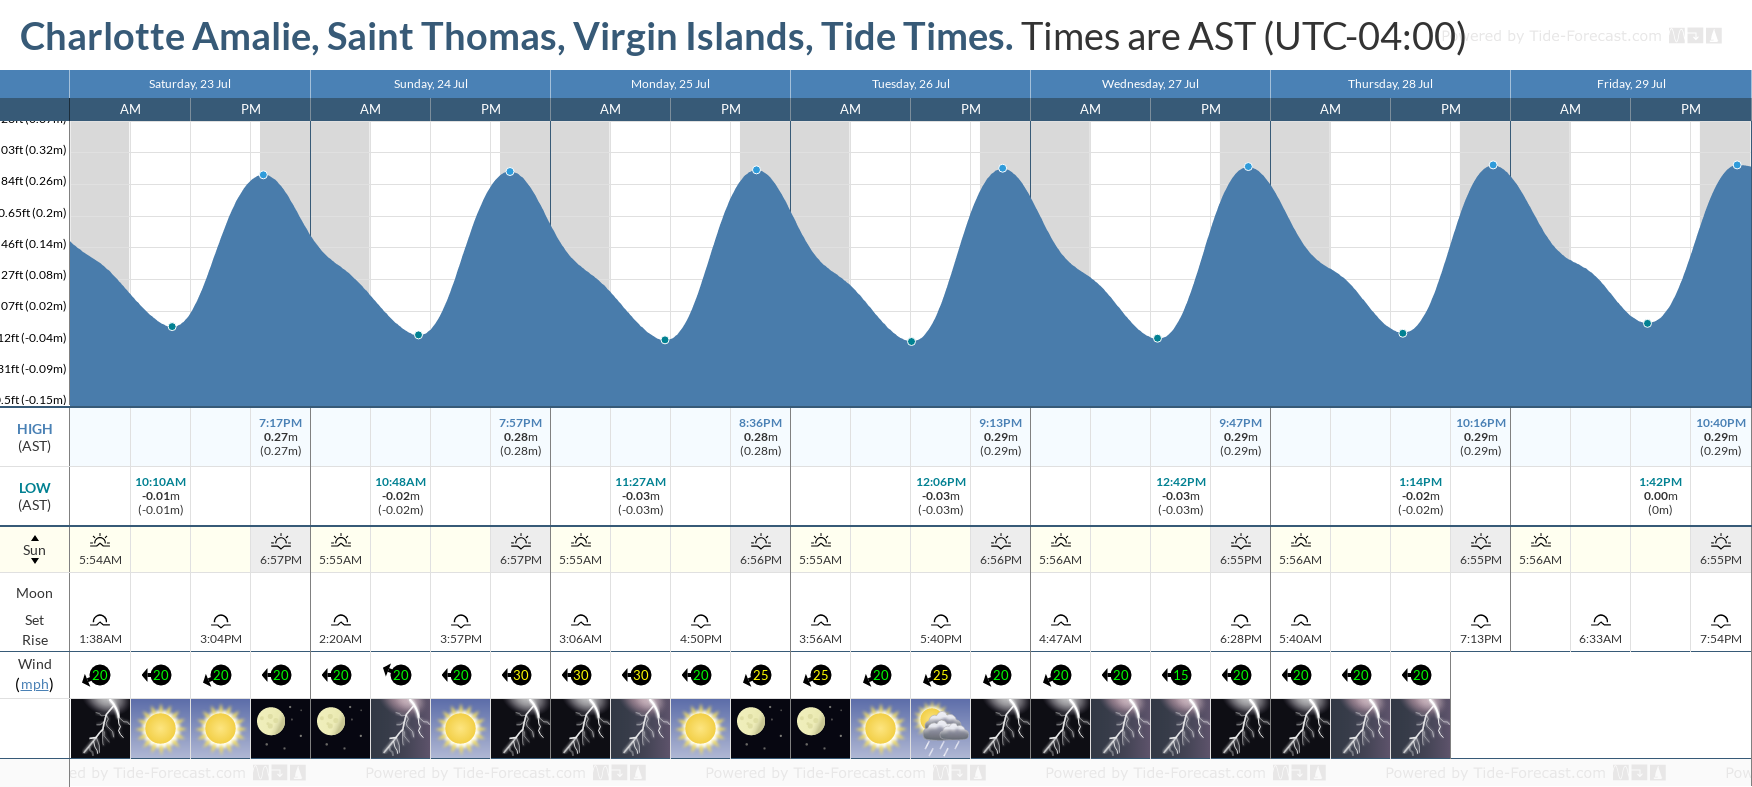 Charlotte Amalie, Saint Thomas, Virgin Islands Tide Chart including high and low tide tide times for the next 7 days